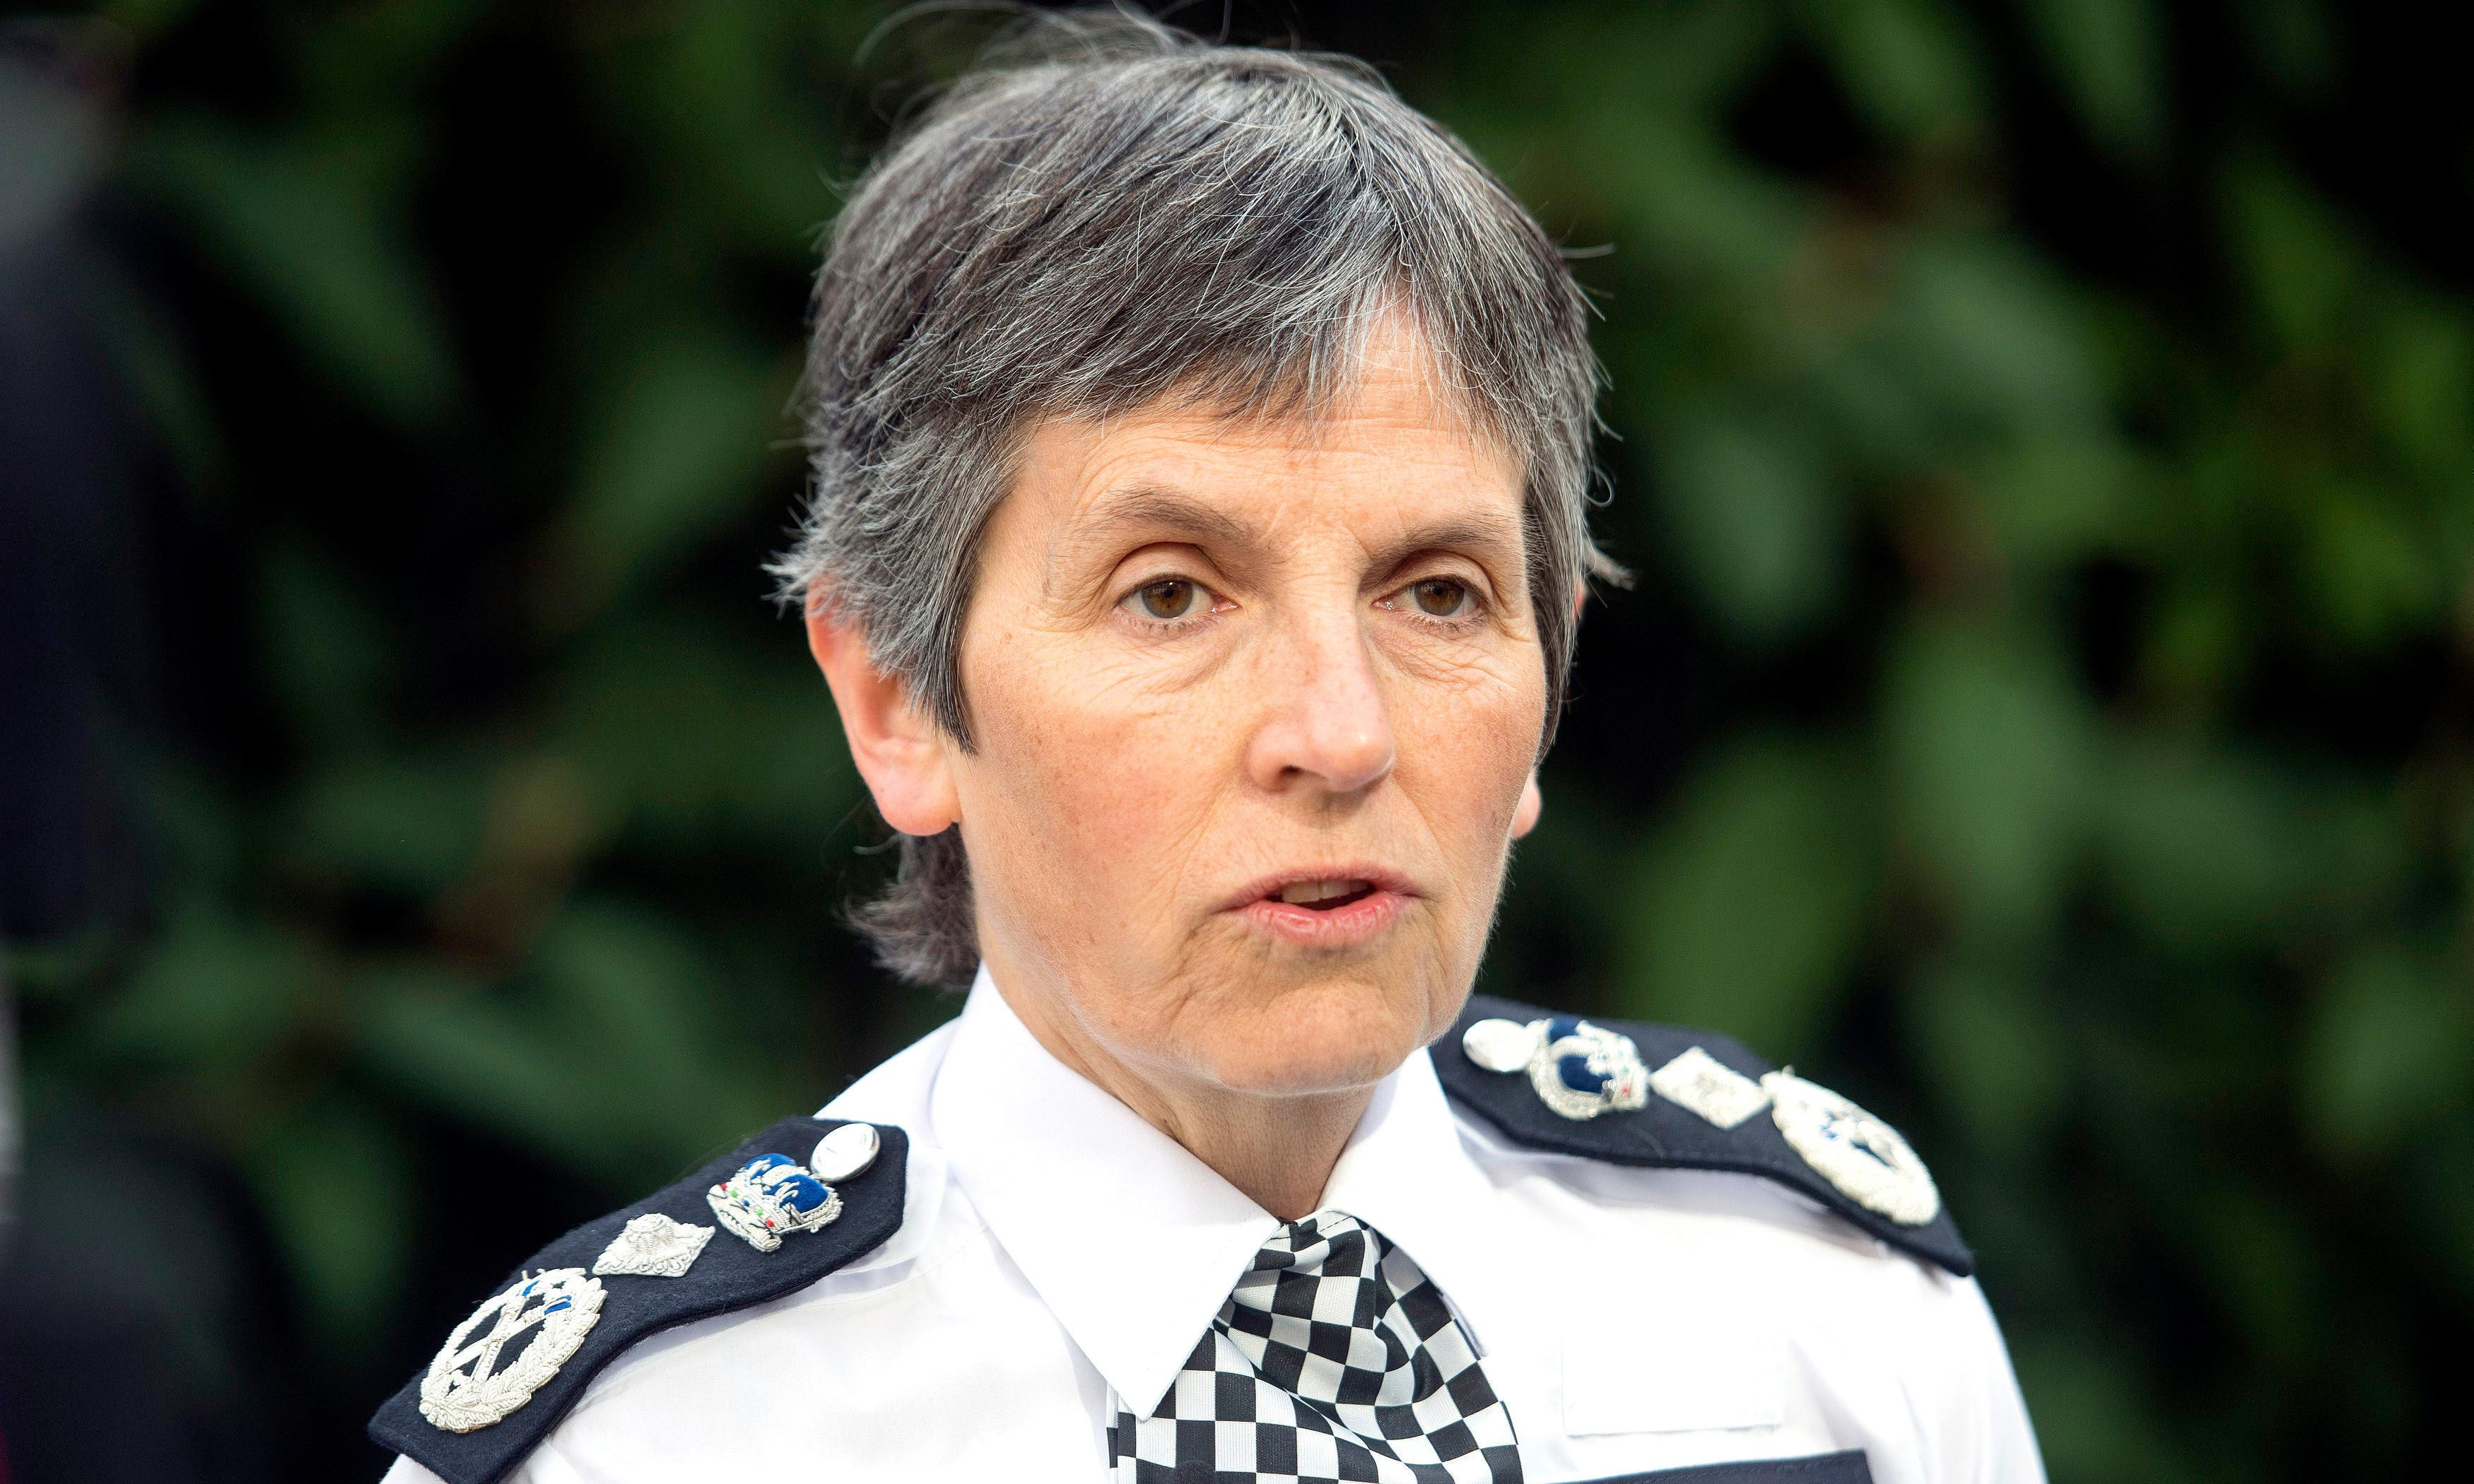 Met disproportionately white for another 100 years – police leaders